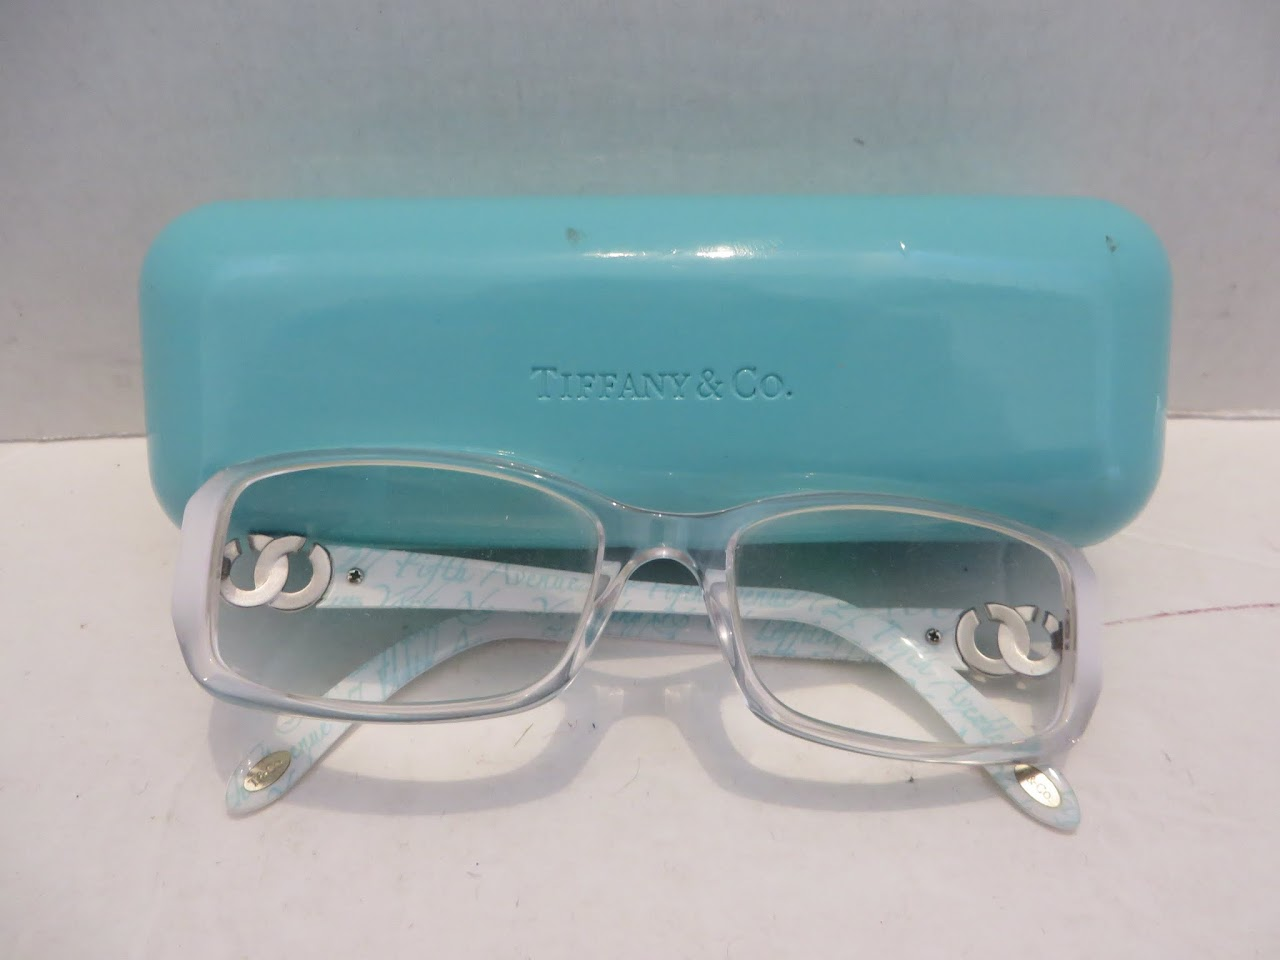 Tiffany & Co. Rx Glasses